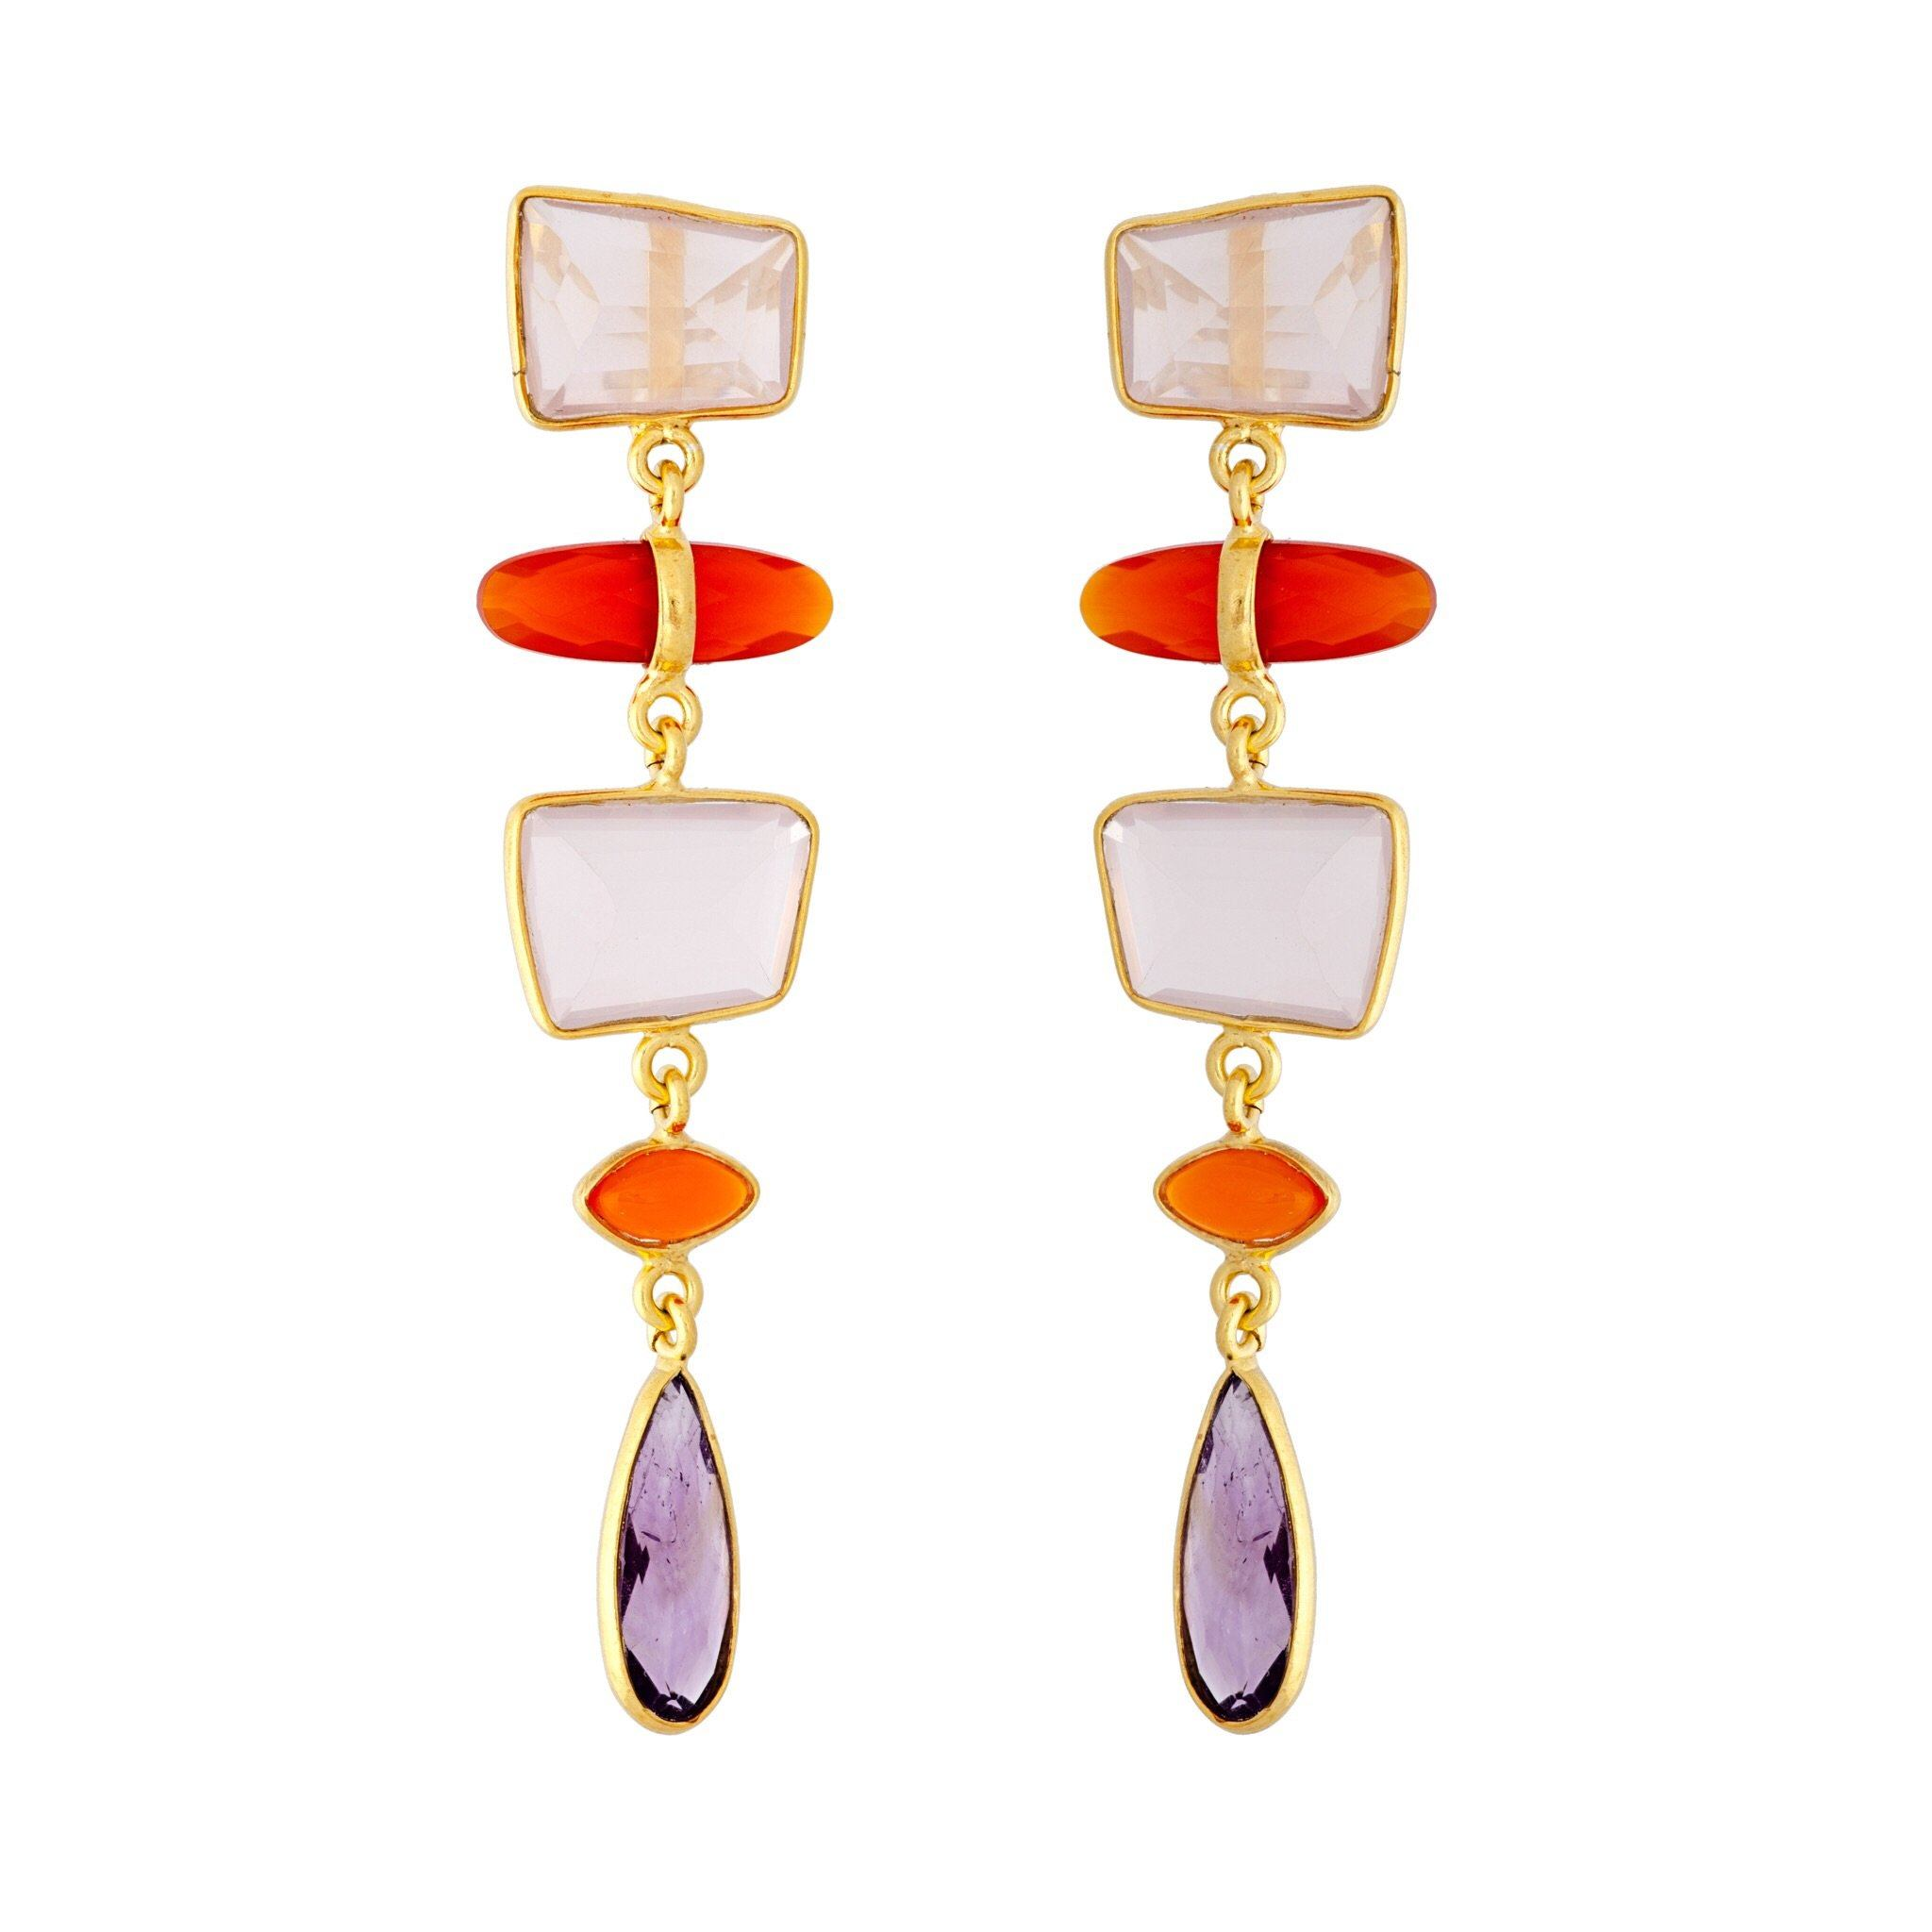 UDAIPUR amethyst earrings - MadamSiam